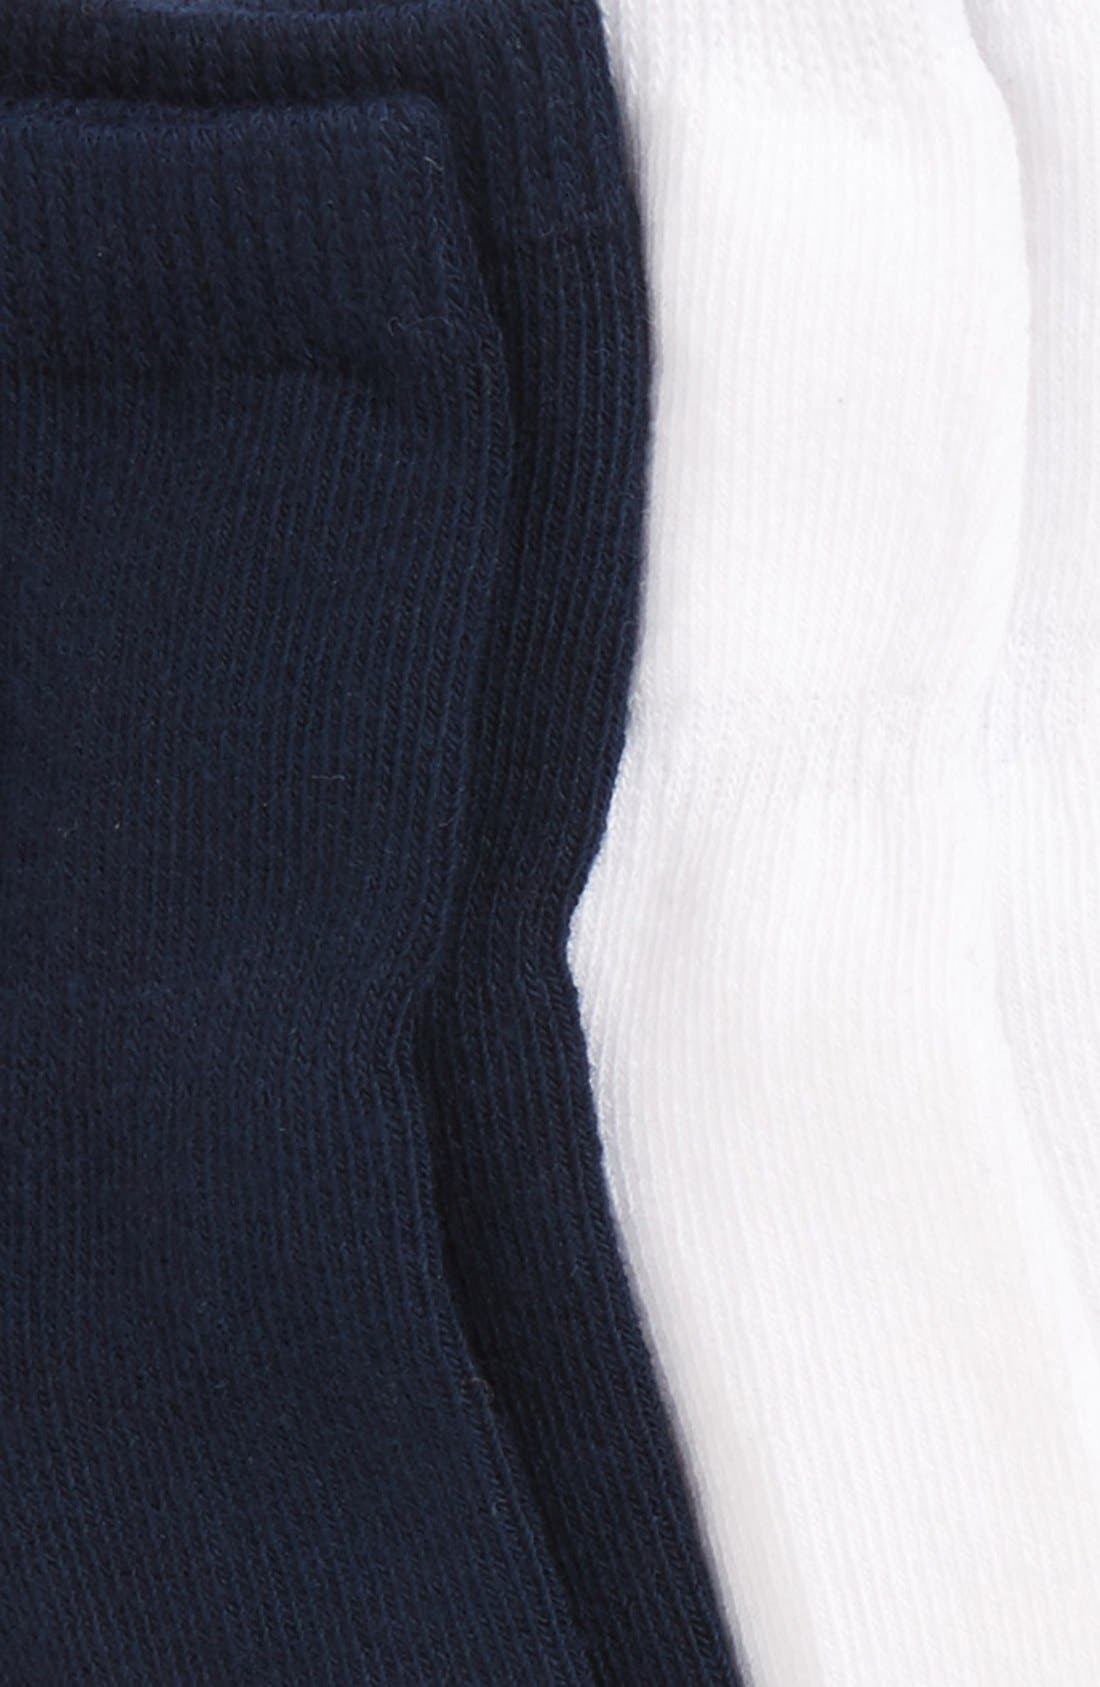 6-Pack Ankle Socks,                             Alternate thumbnail 2, color,                             NAVY